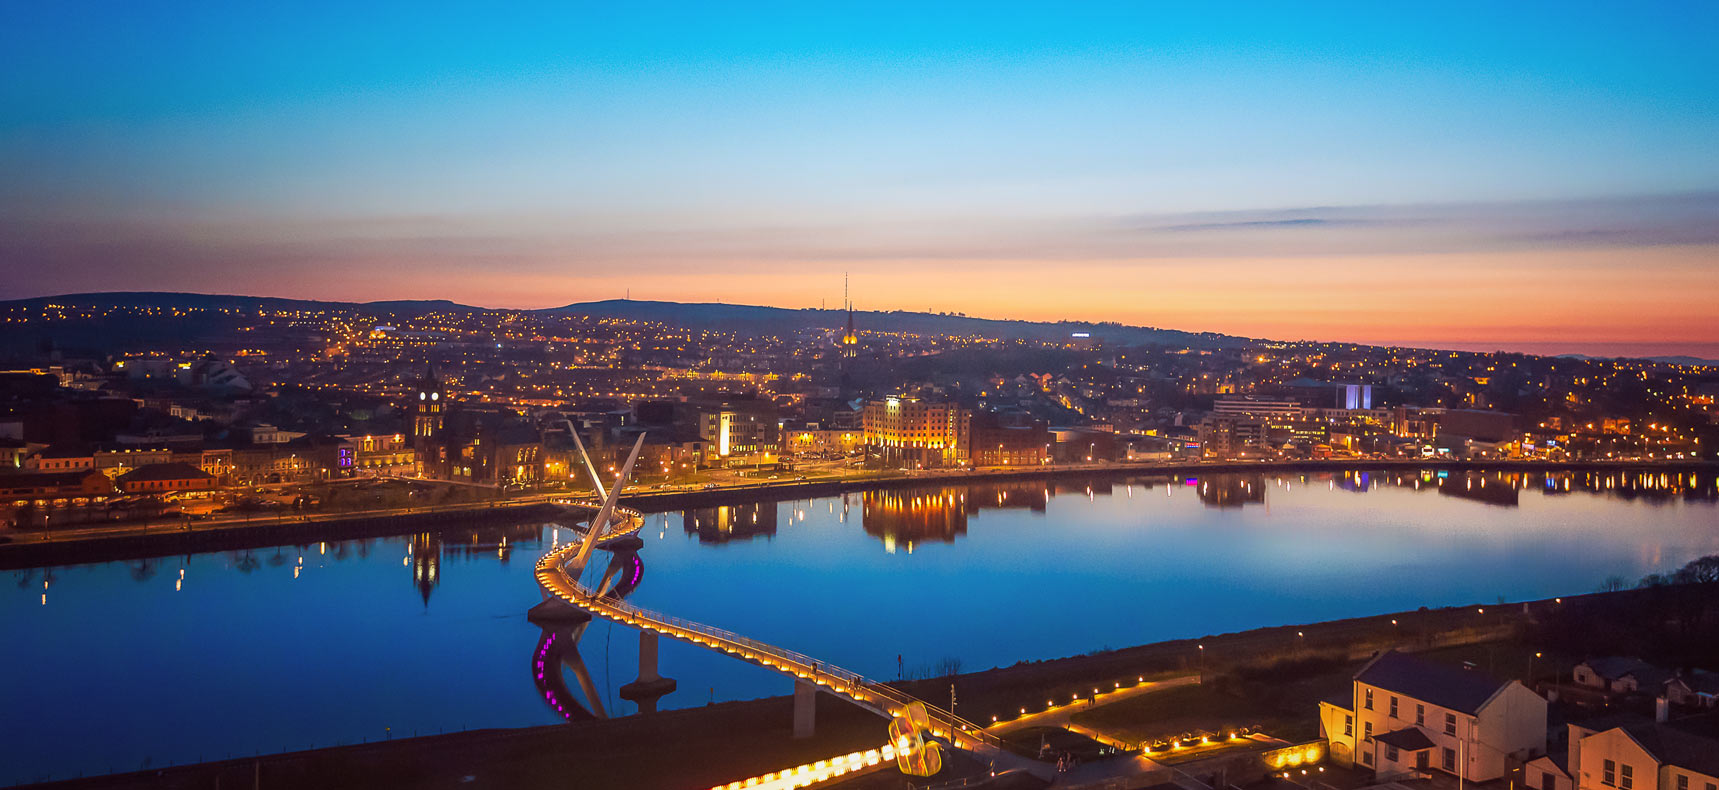 Derry city river foyle and peace bridge